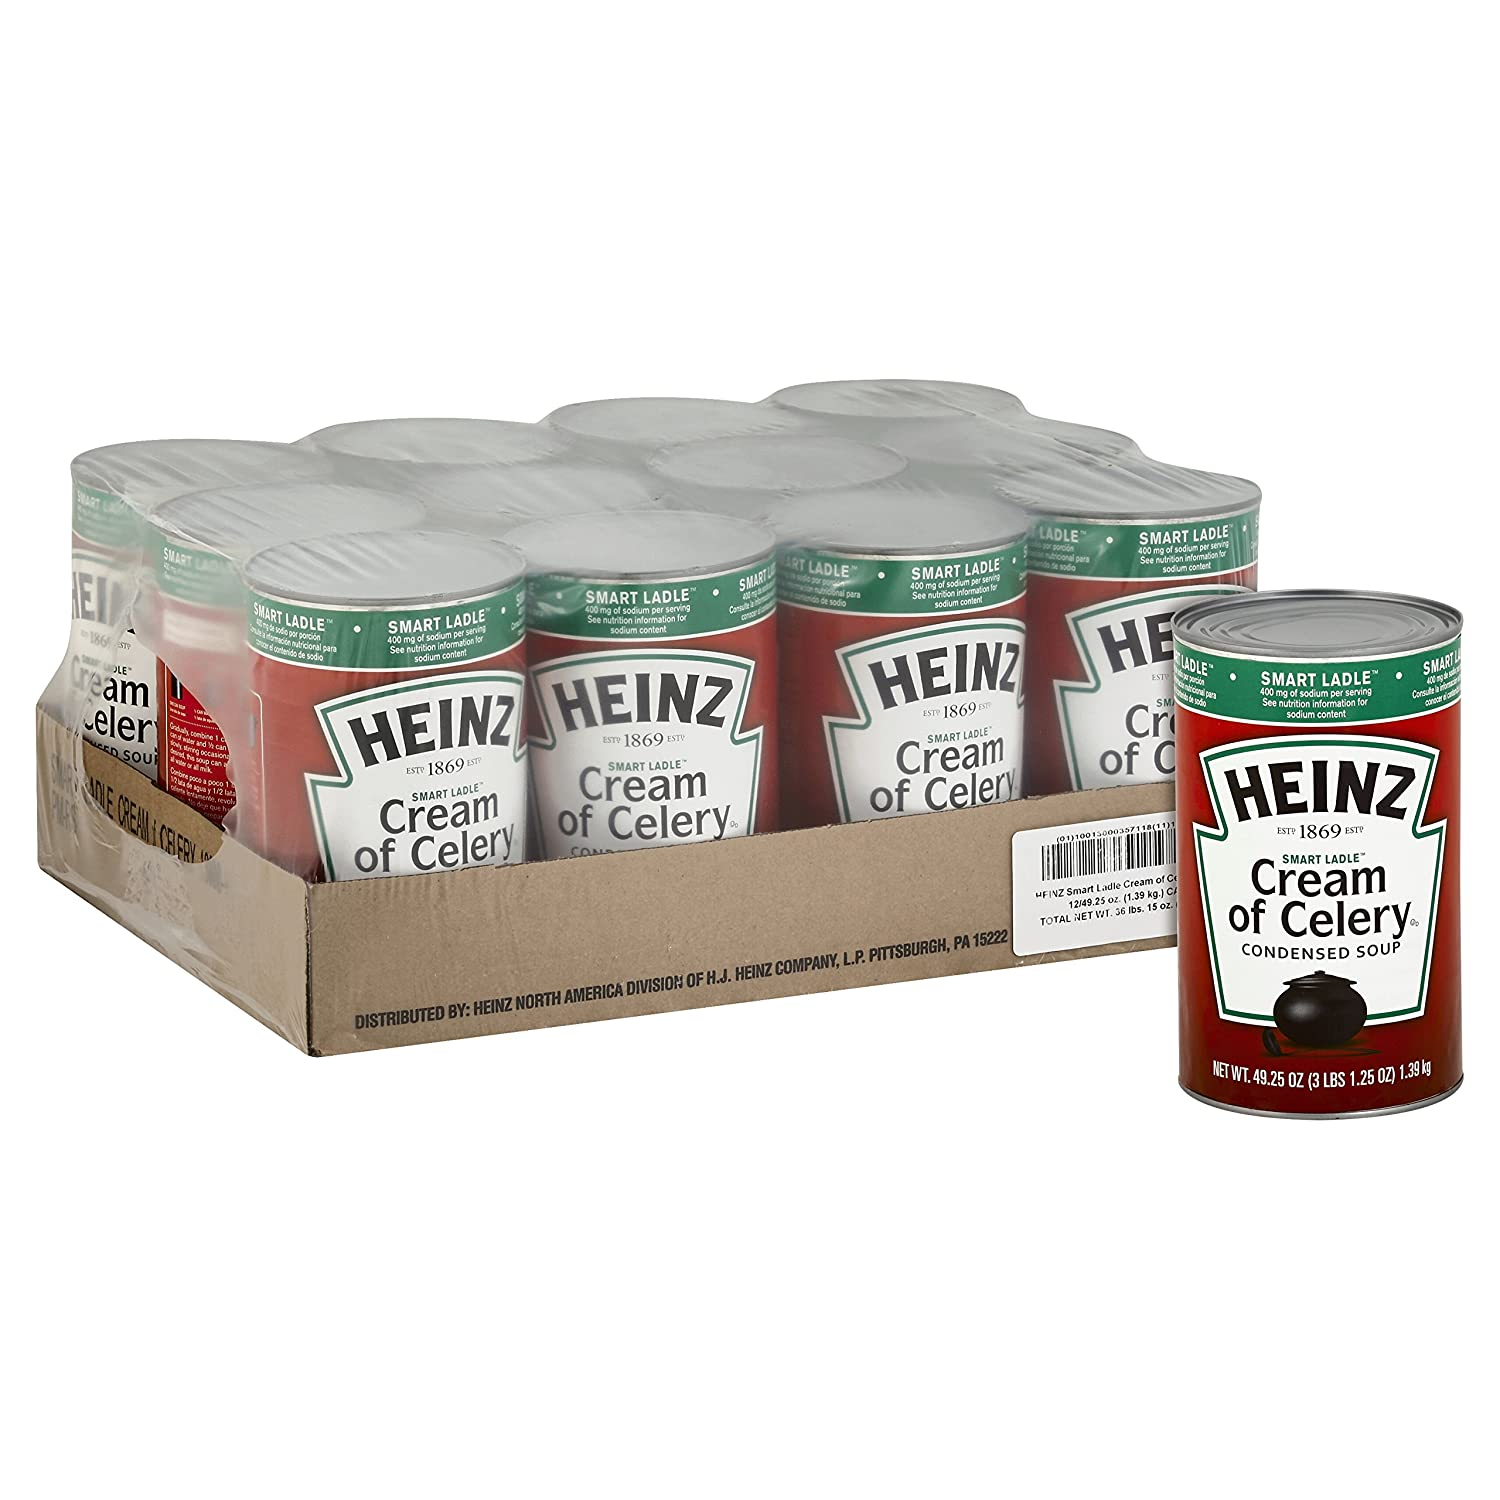 Amazon.com : Heinz Reduced Sodium Soup Can, Cream of Mushroom, 49.5 Ounce (Pack of 12) : Grocery & Gourmet Food